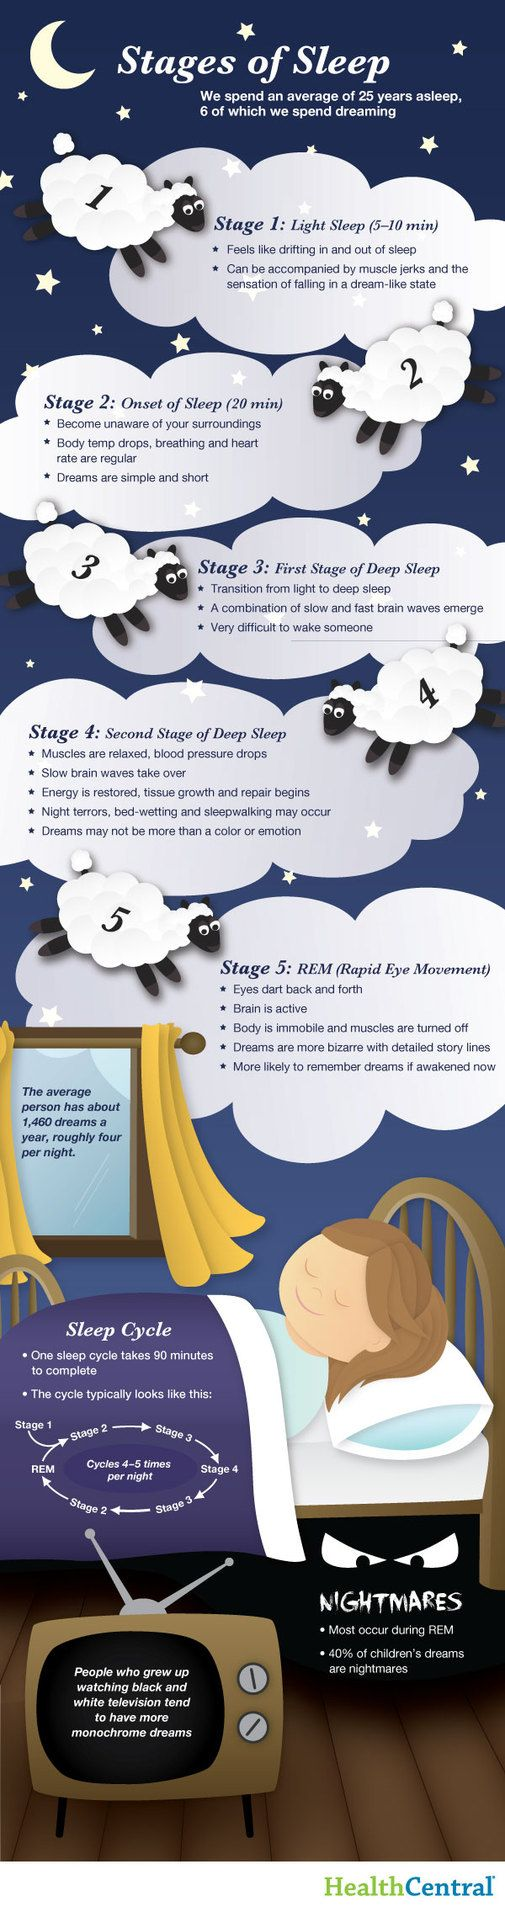 How you sleep: infographic that explains what happens when we sleep at